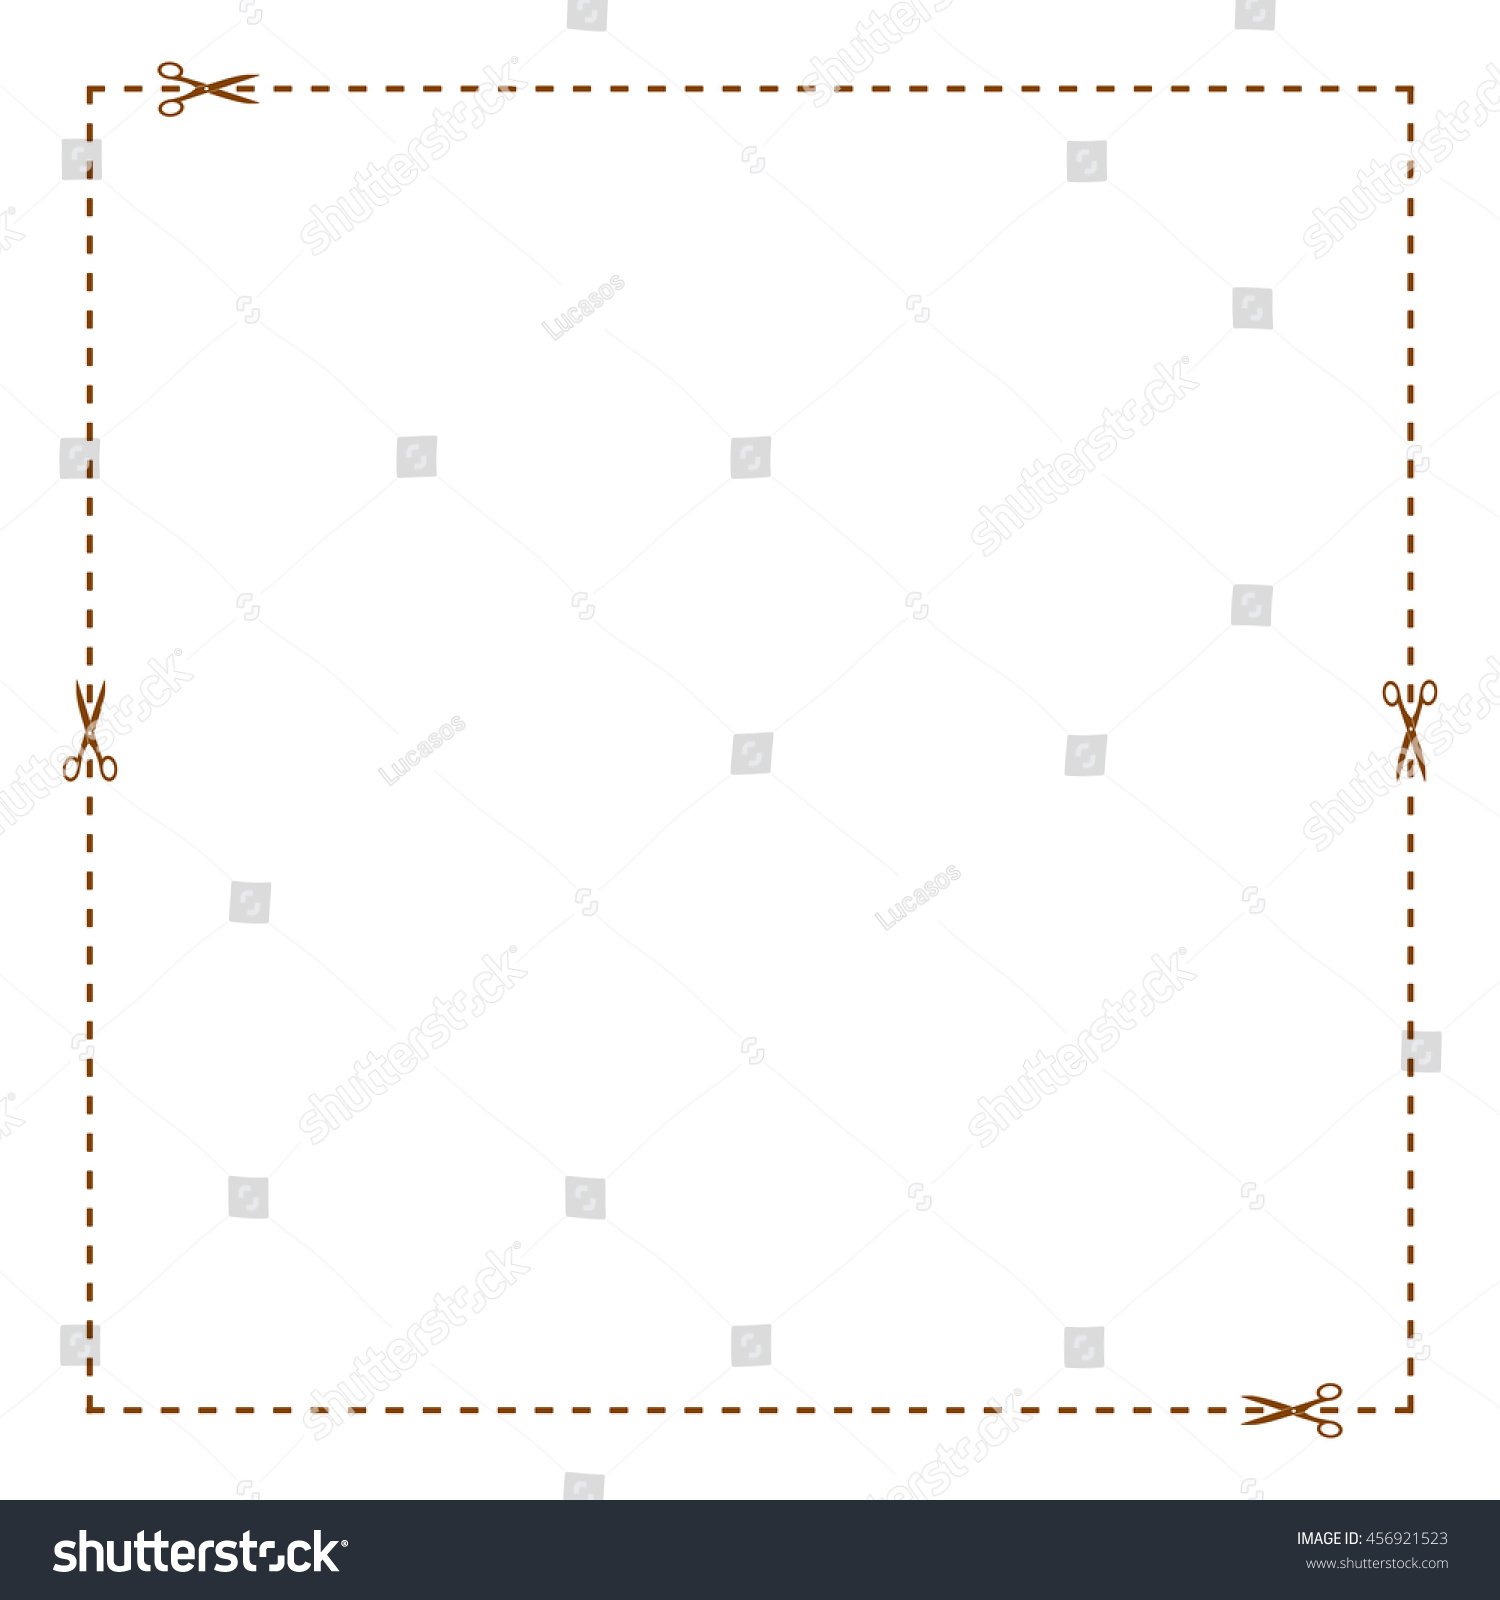 ShutterStock Coupon Codes All Active ShutterStock Coupons & Coupon Codes - Up To 20% off in December ShutterStock is possibly the best known online resource for stock photos, vectors, videos and music tracks. Get photos, editorials, illustrations, icons .